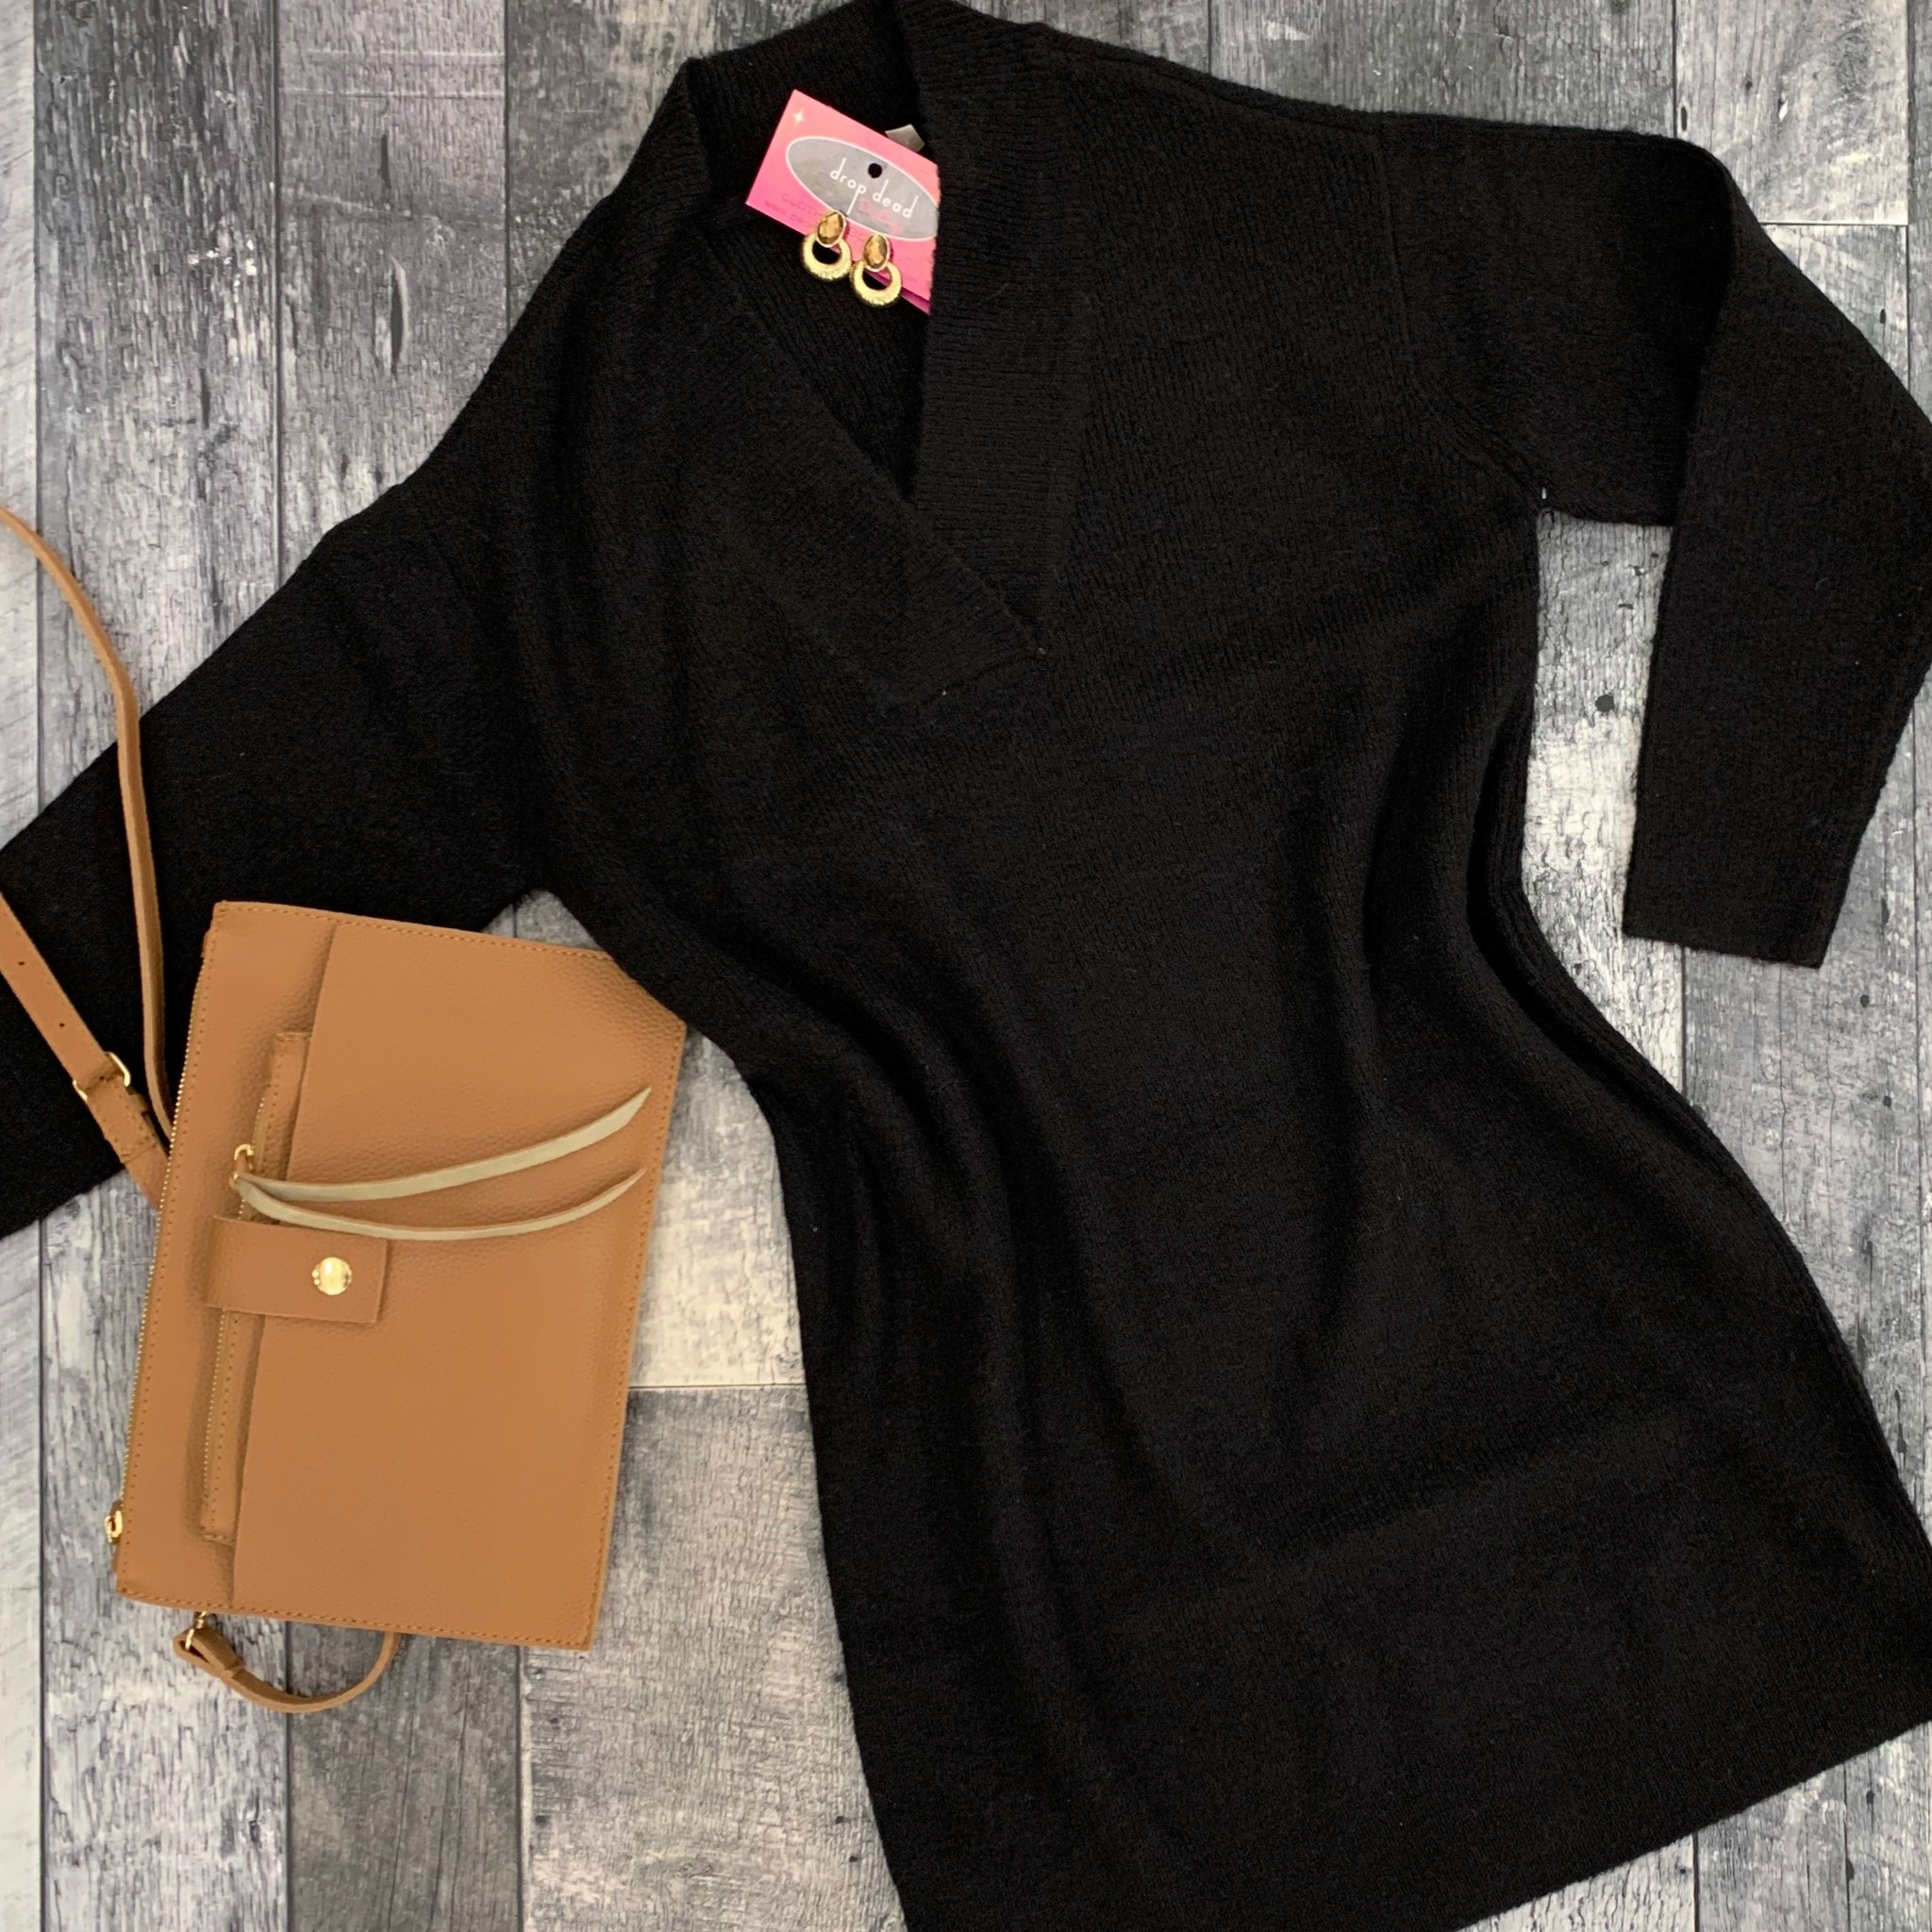 rd style - long sleeve knit sweater dress